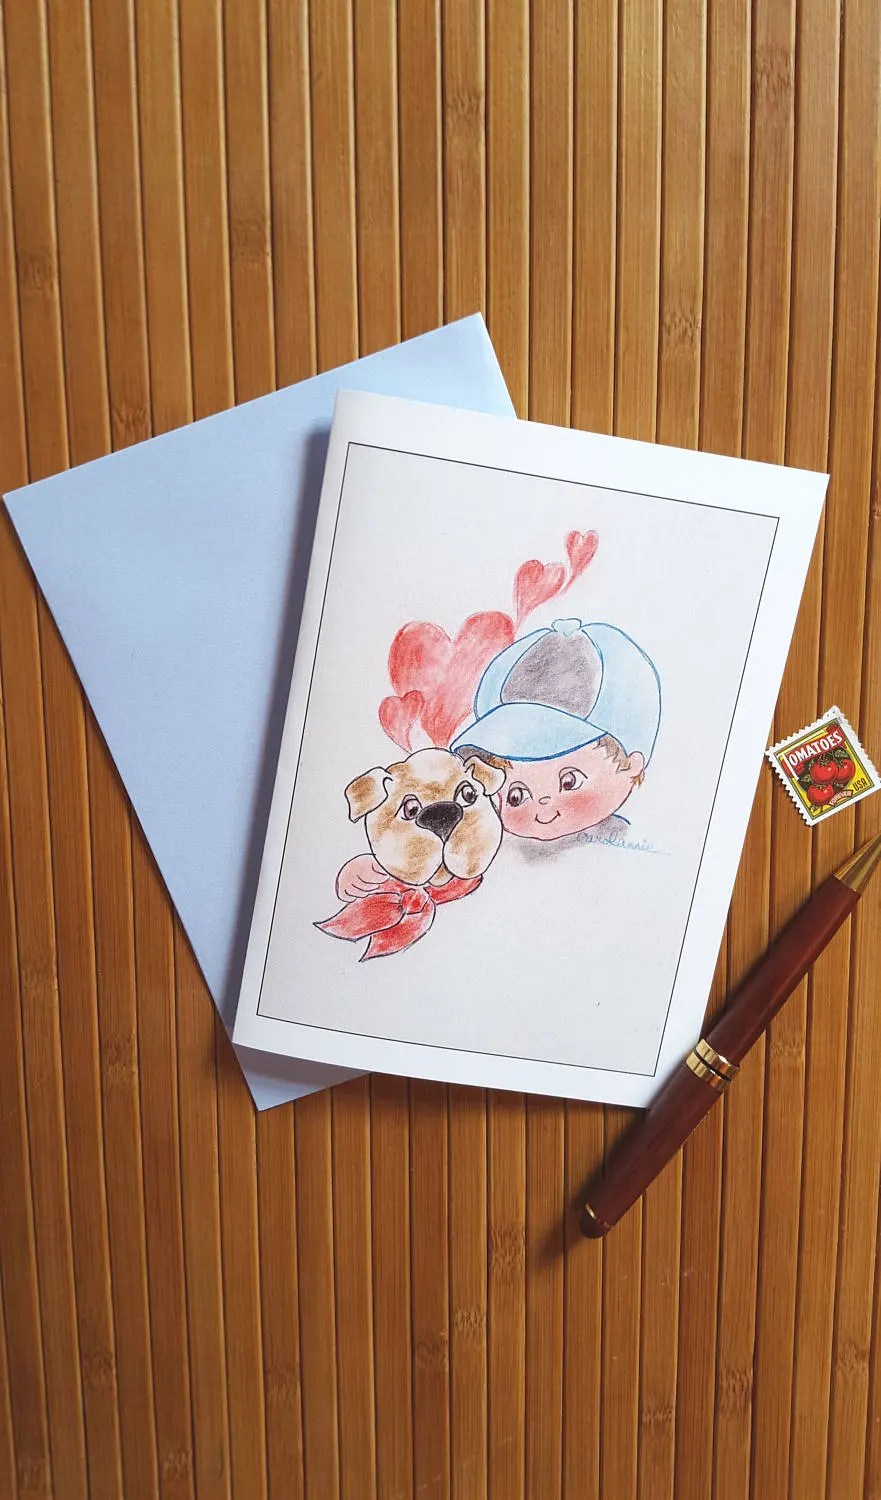 Boy and Beagle Note Cards Blank Note Cards Beagle Note Etsy